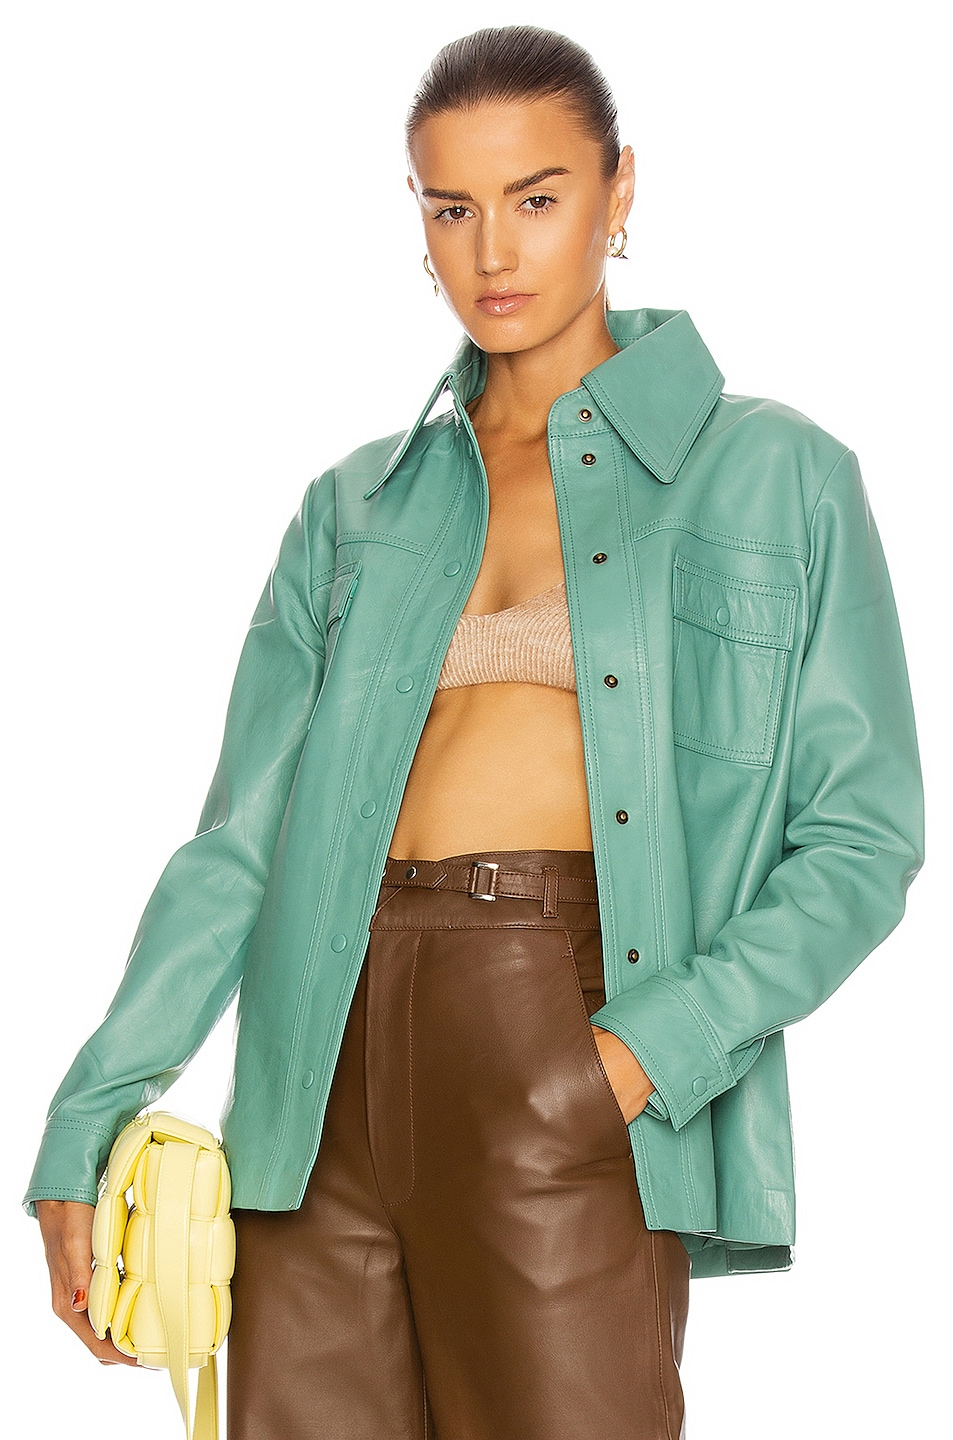 Image 1 of REMAIN Rosalee Long Sleeve Leather Shirt in Creme De Menthe